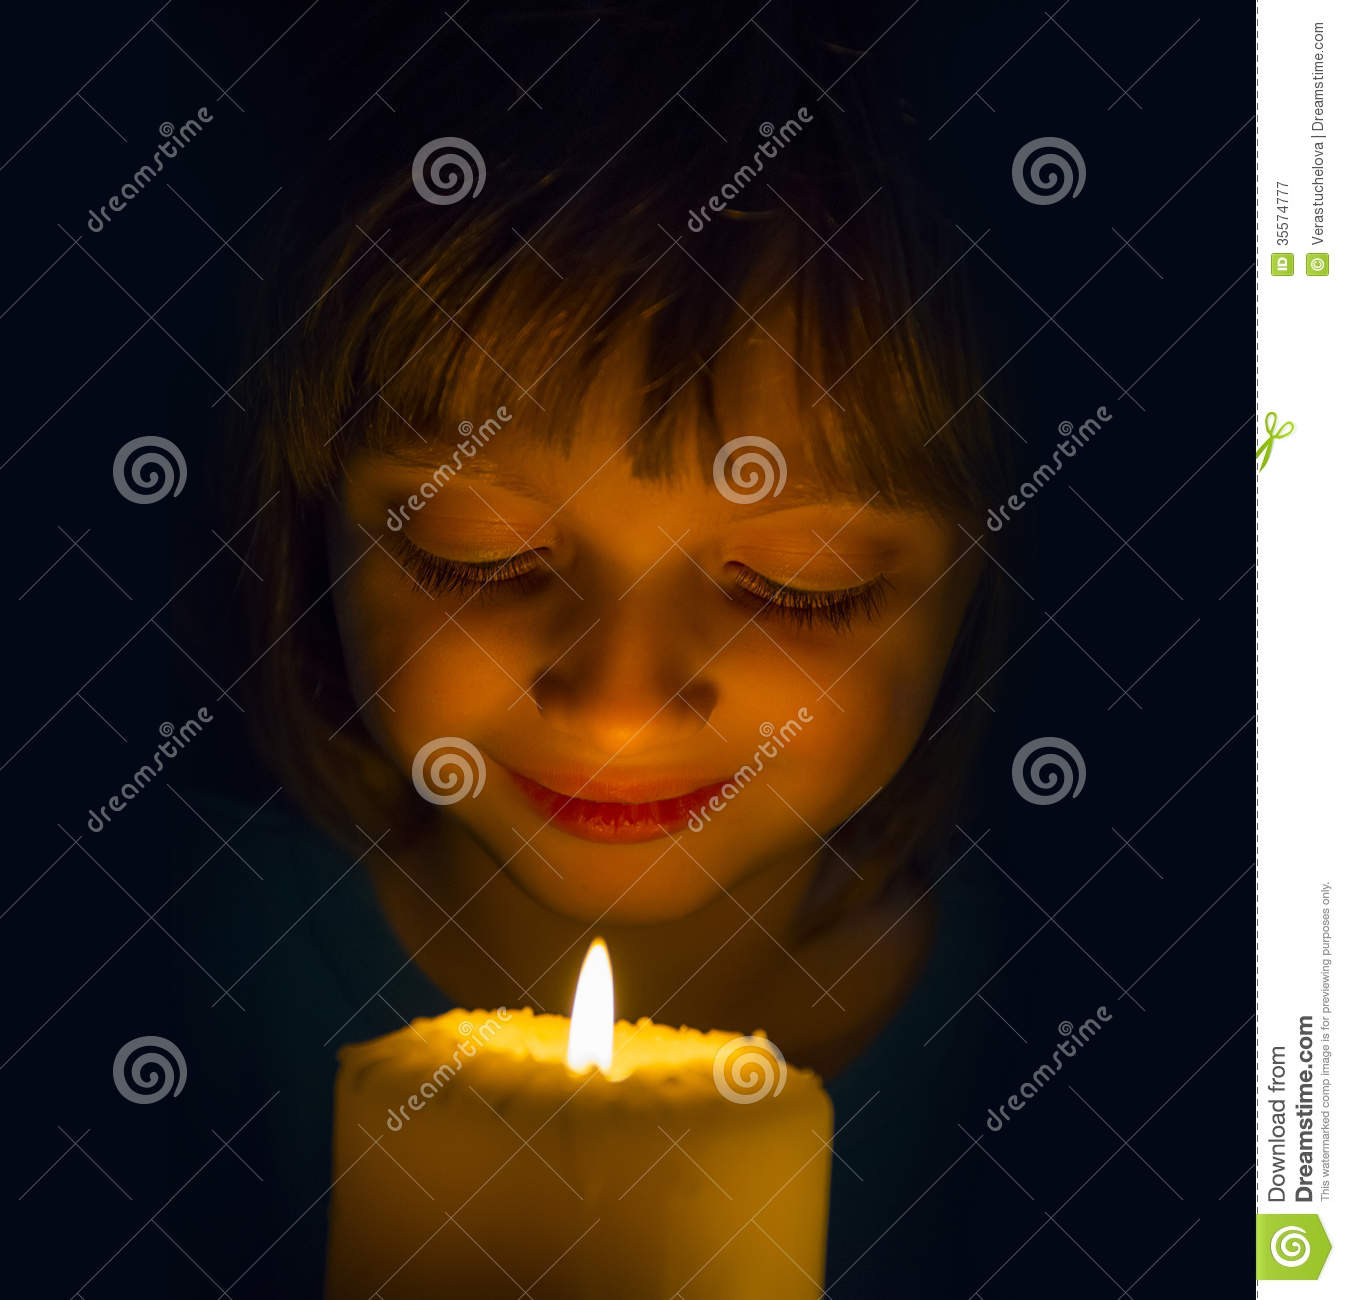 The little candle girl on the